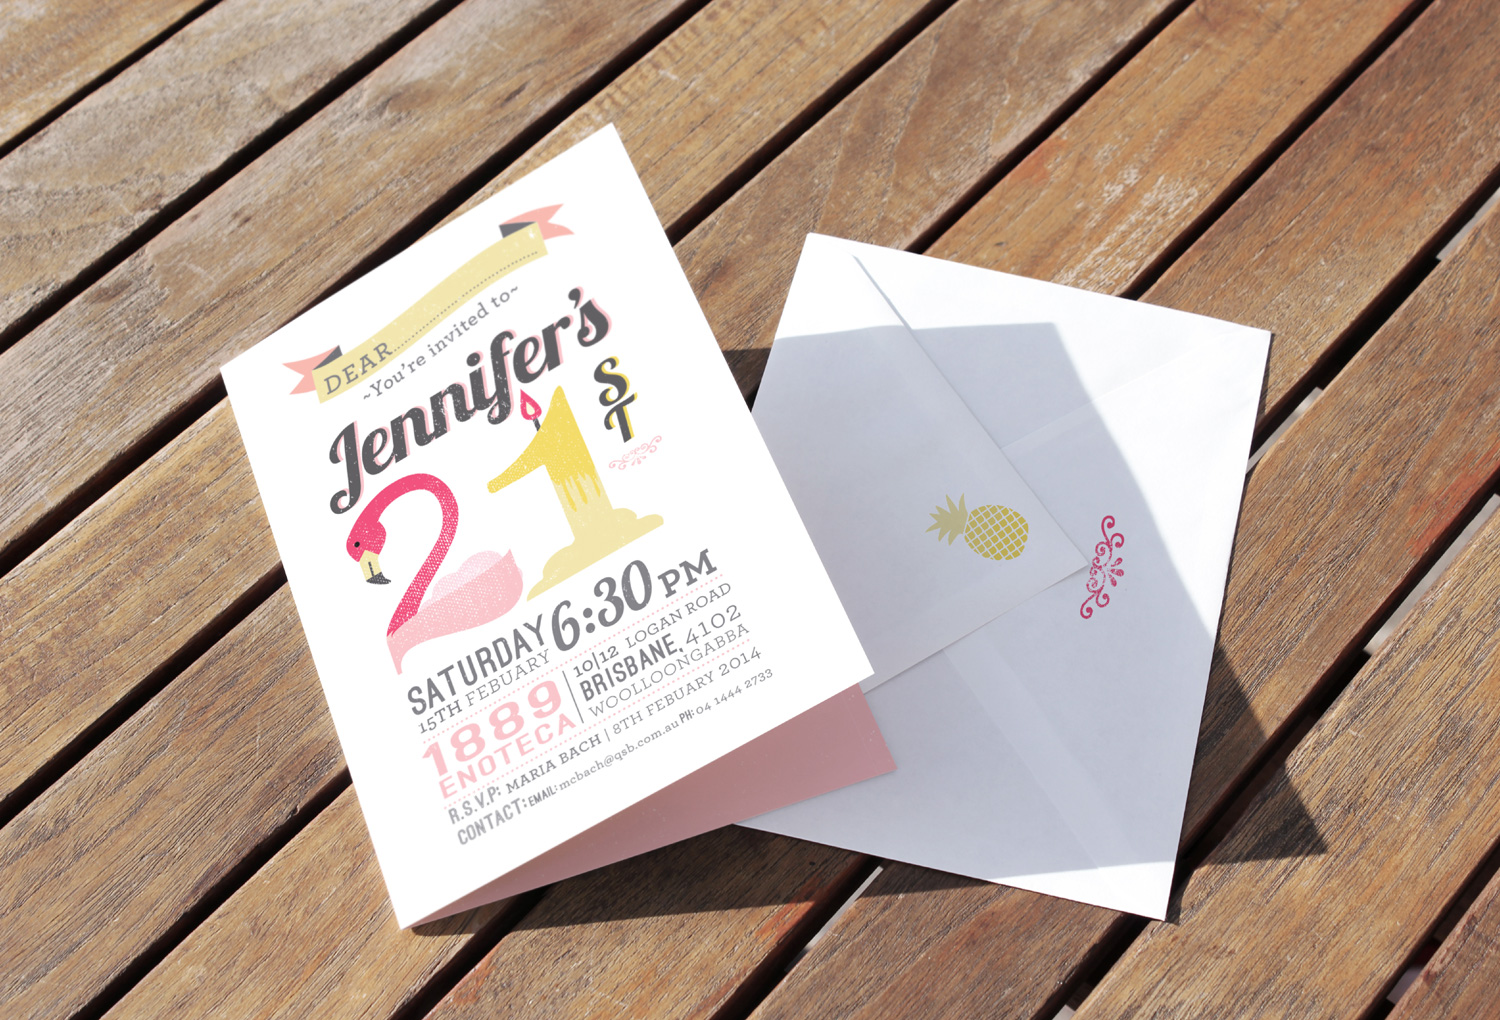 A5 21st Birthday Invitation for Jennifer